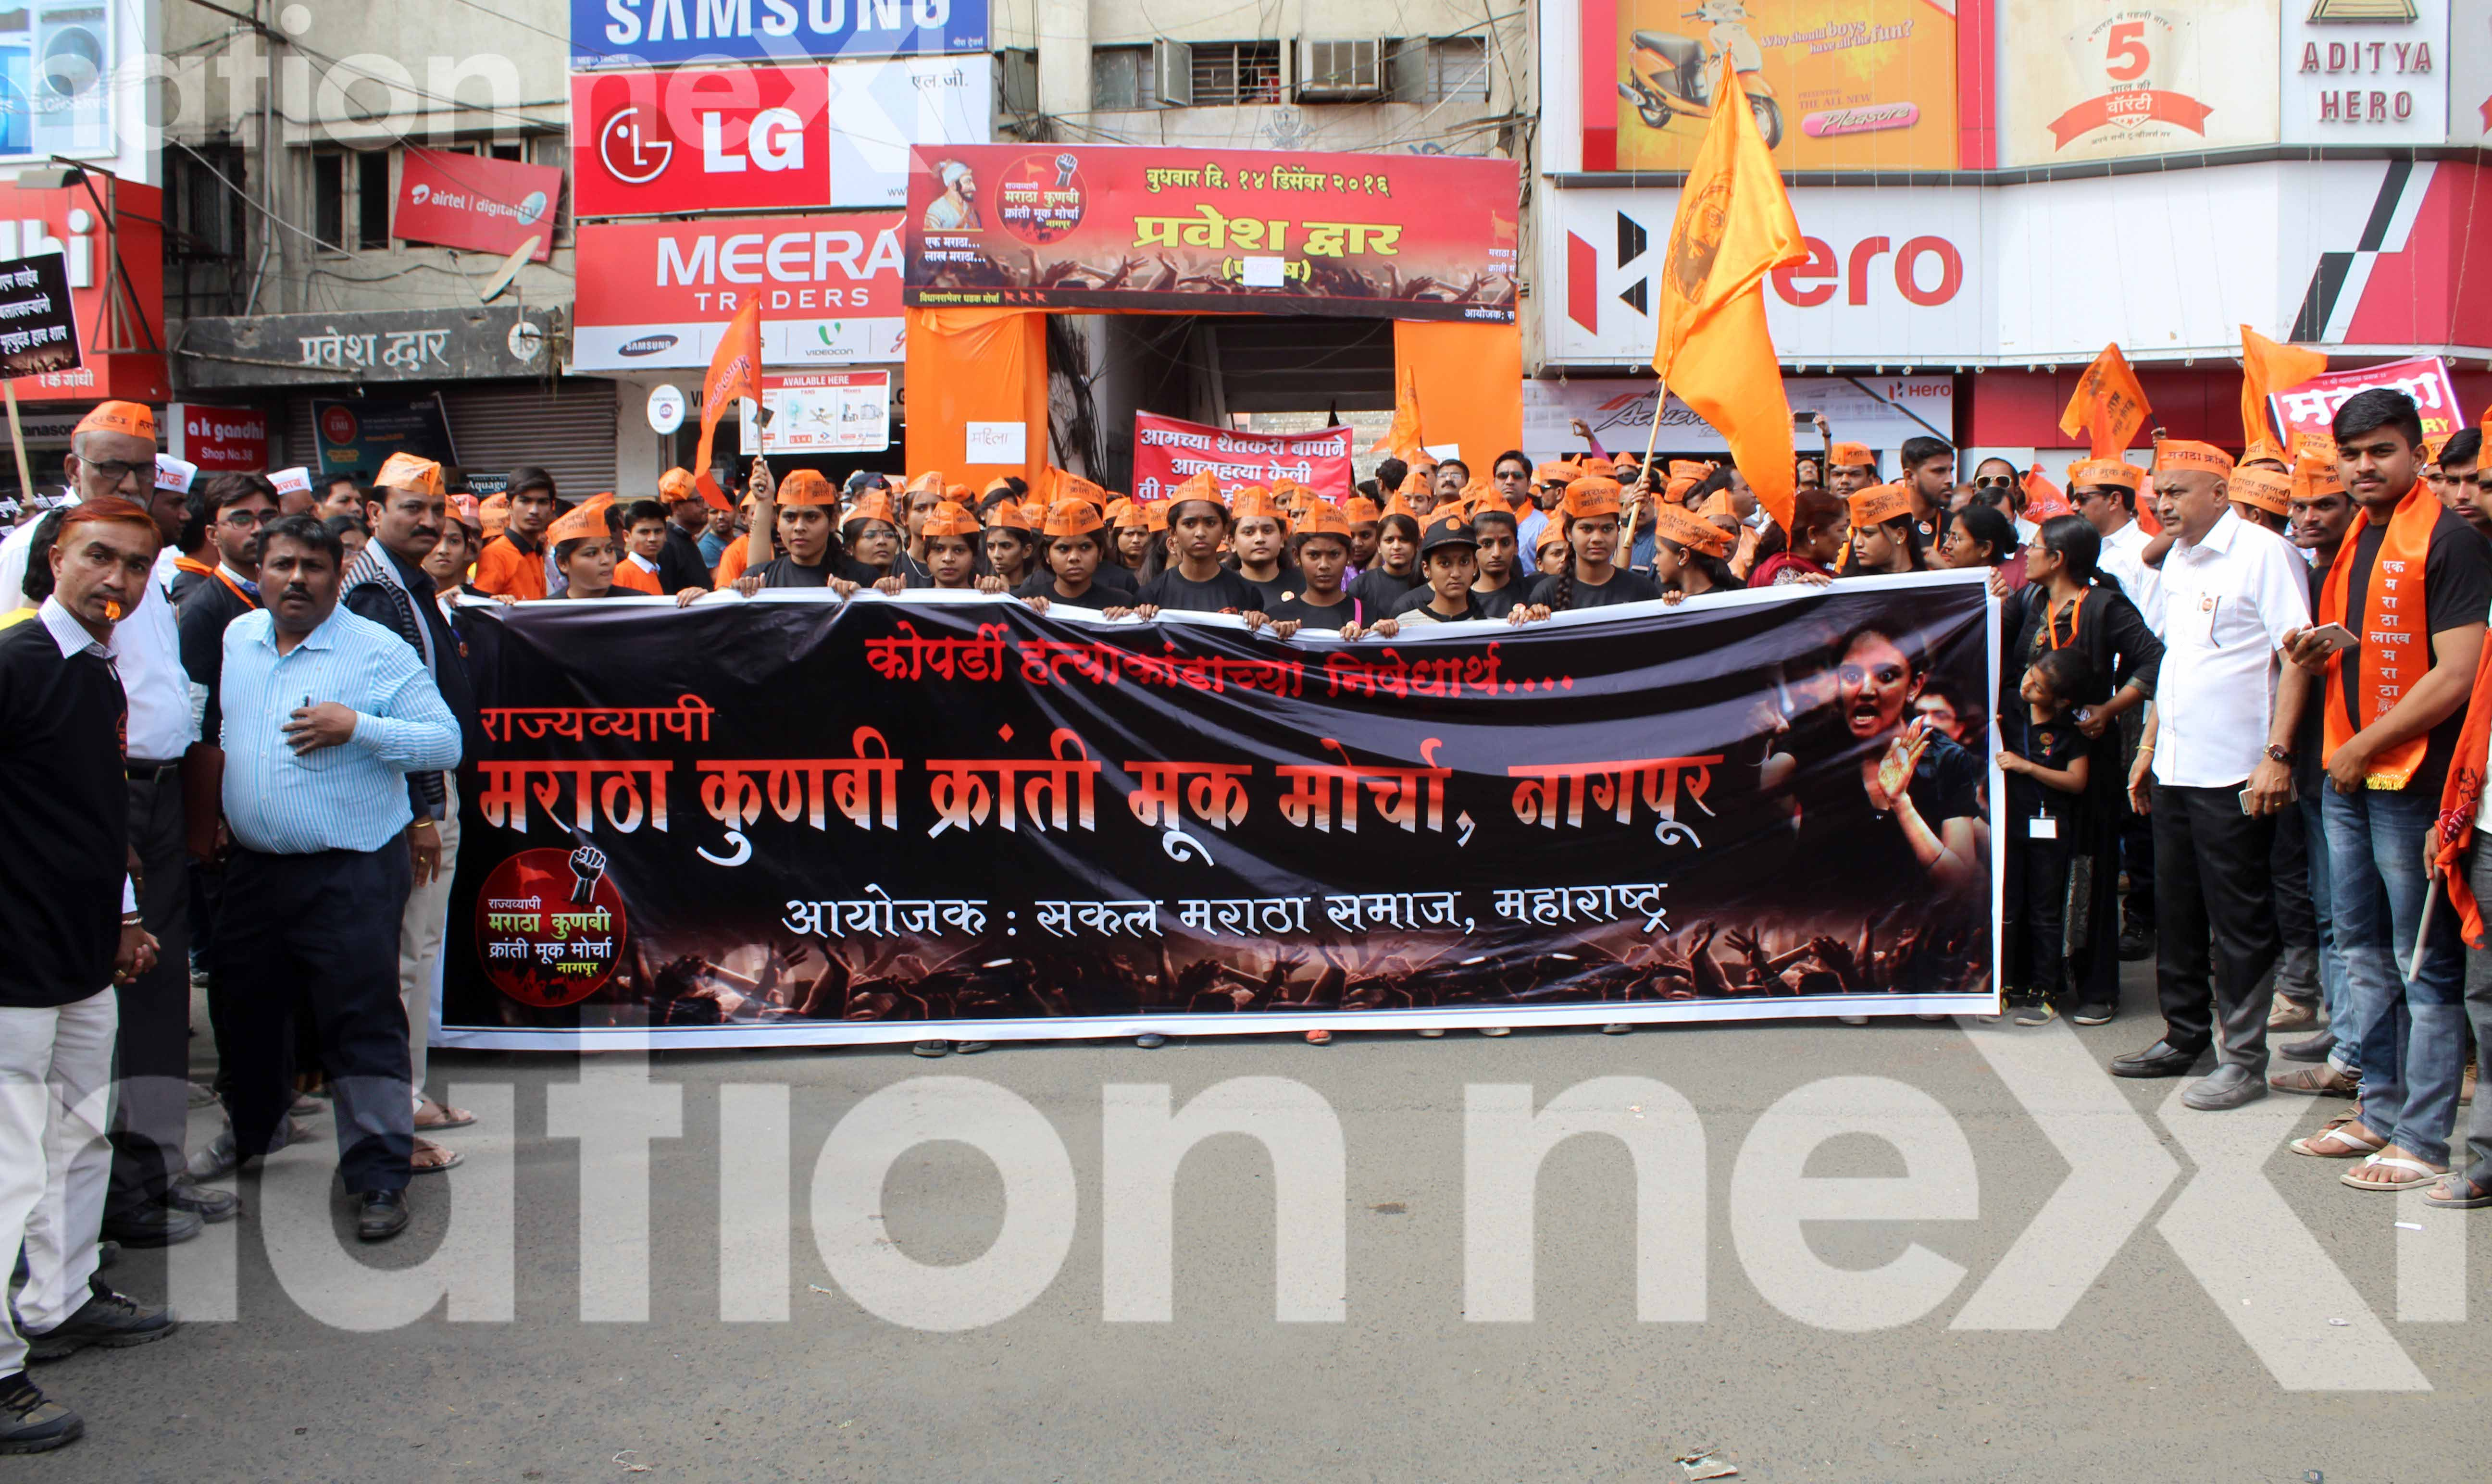 People participating in Maratha community protest in Nagpur in December 2016. (File Photo/Nation Next)